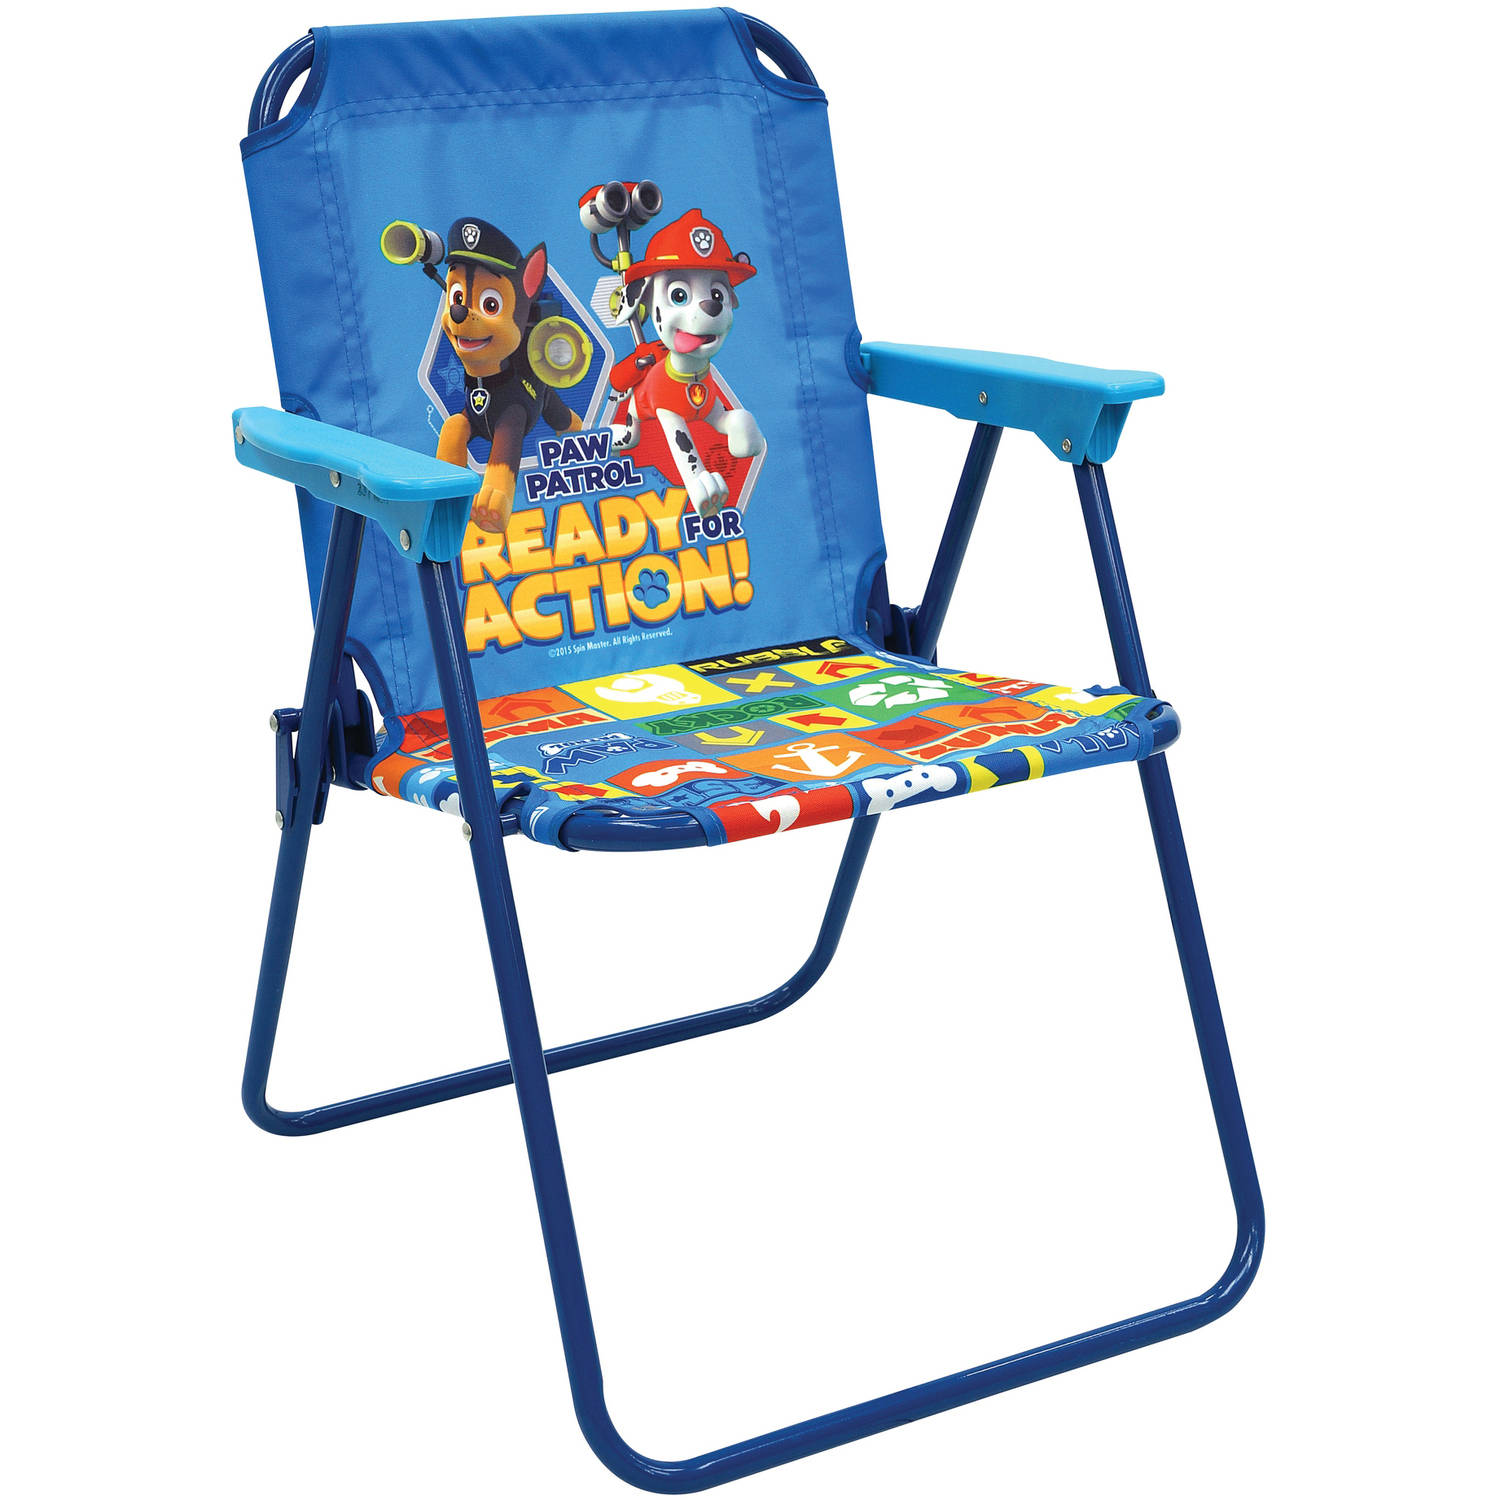 walmart fold out chair swivel office warehouse paw patrol n' go - walmart.com